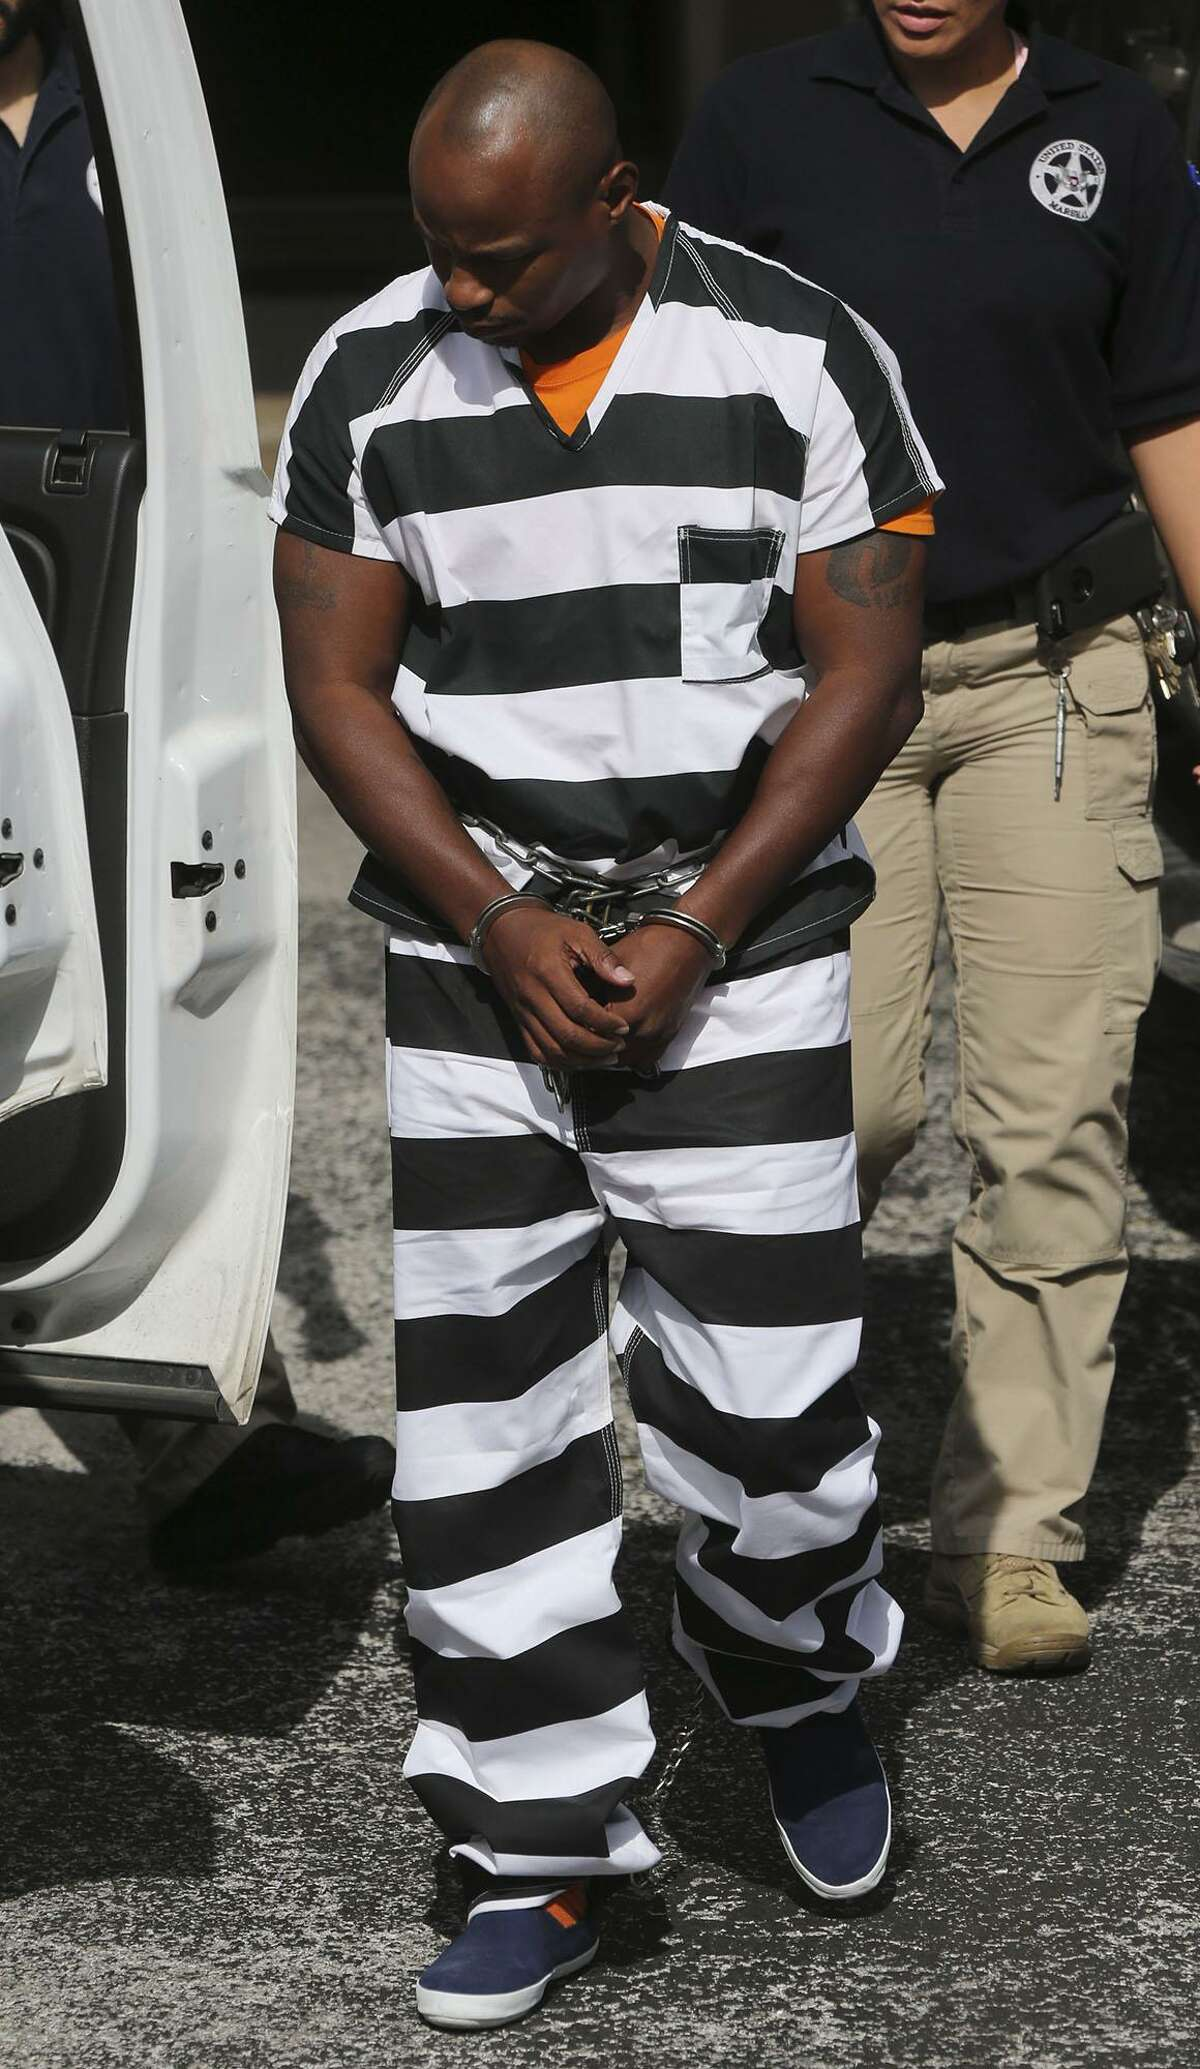 Army Sgt. 1st Class Maliek Kearney,35, is walked to an SUV Tuesday October 18, 2016 at the John H. Wood, Jr. Federal Courthouse after being denied bail. Kearney is fighting a charge that he traveled interstate to kill his wife in Maryland last year. Kearney is assigned to Joint Base San Antonio-Fort Sam Houston.